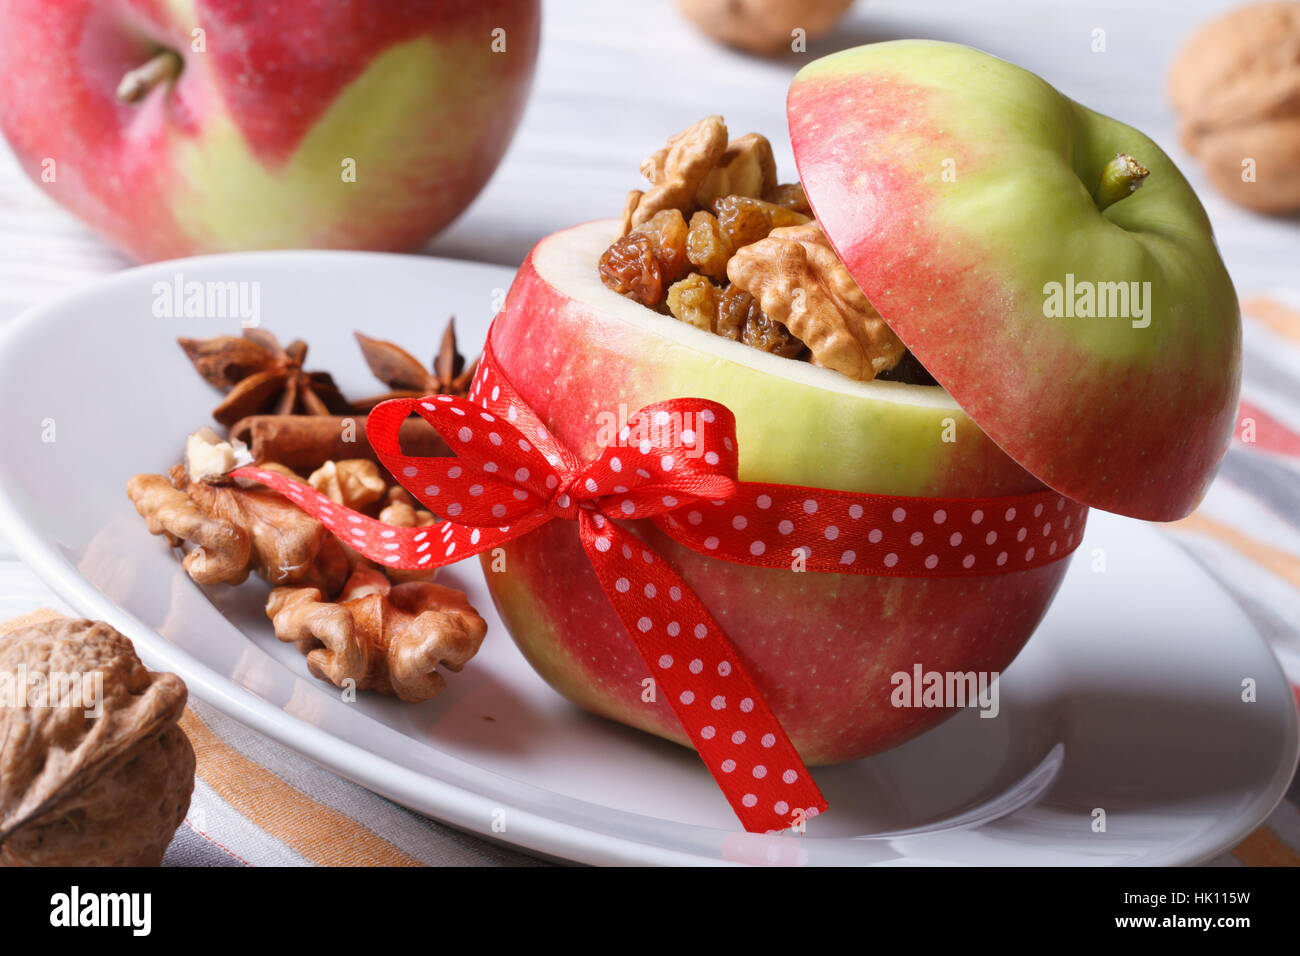 Red apple stuffed with nuts and raisins on white plate close up horizontal - Stock Image